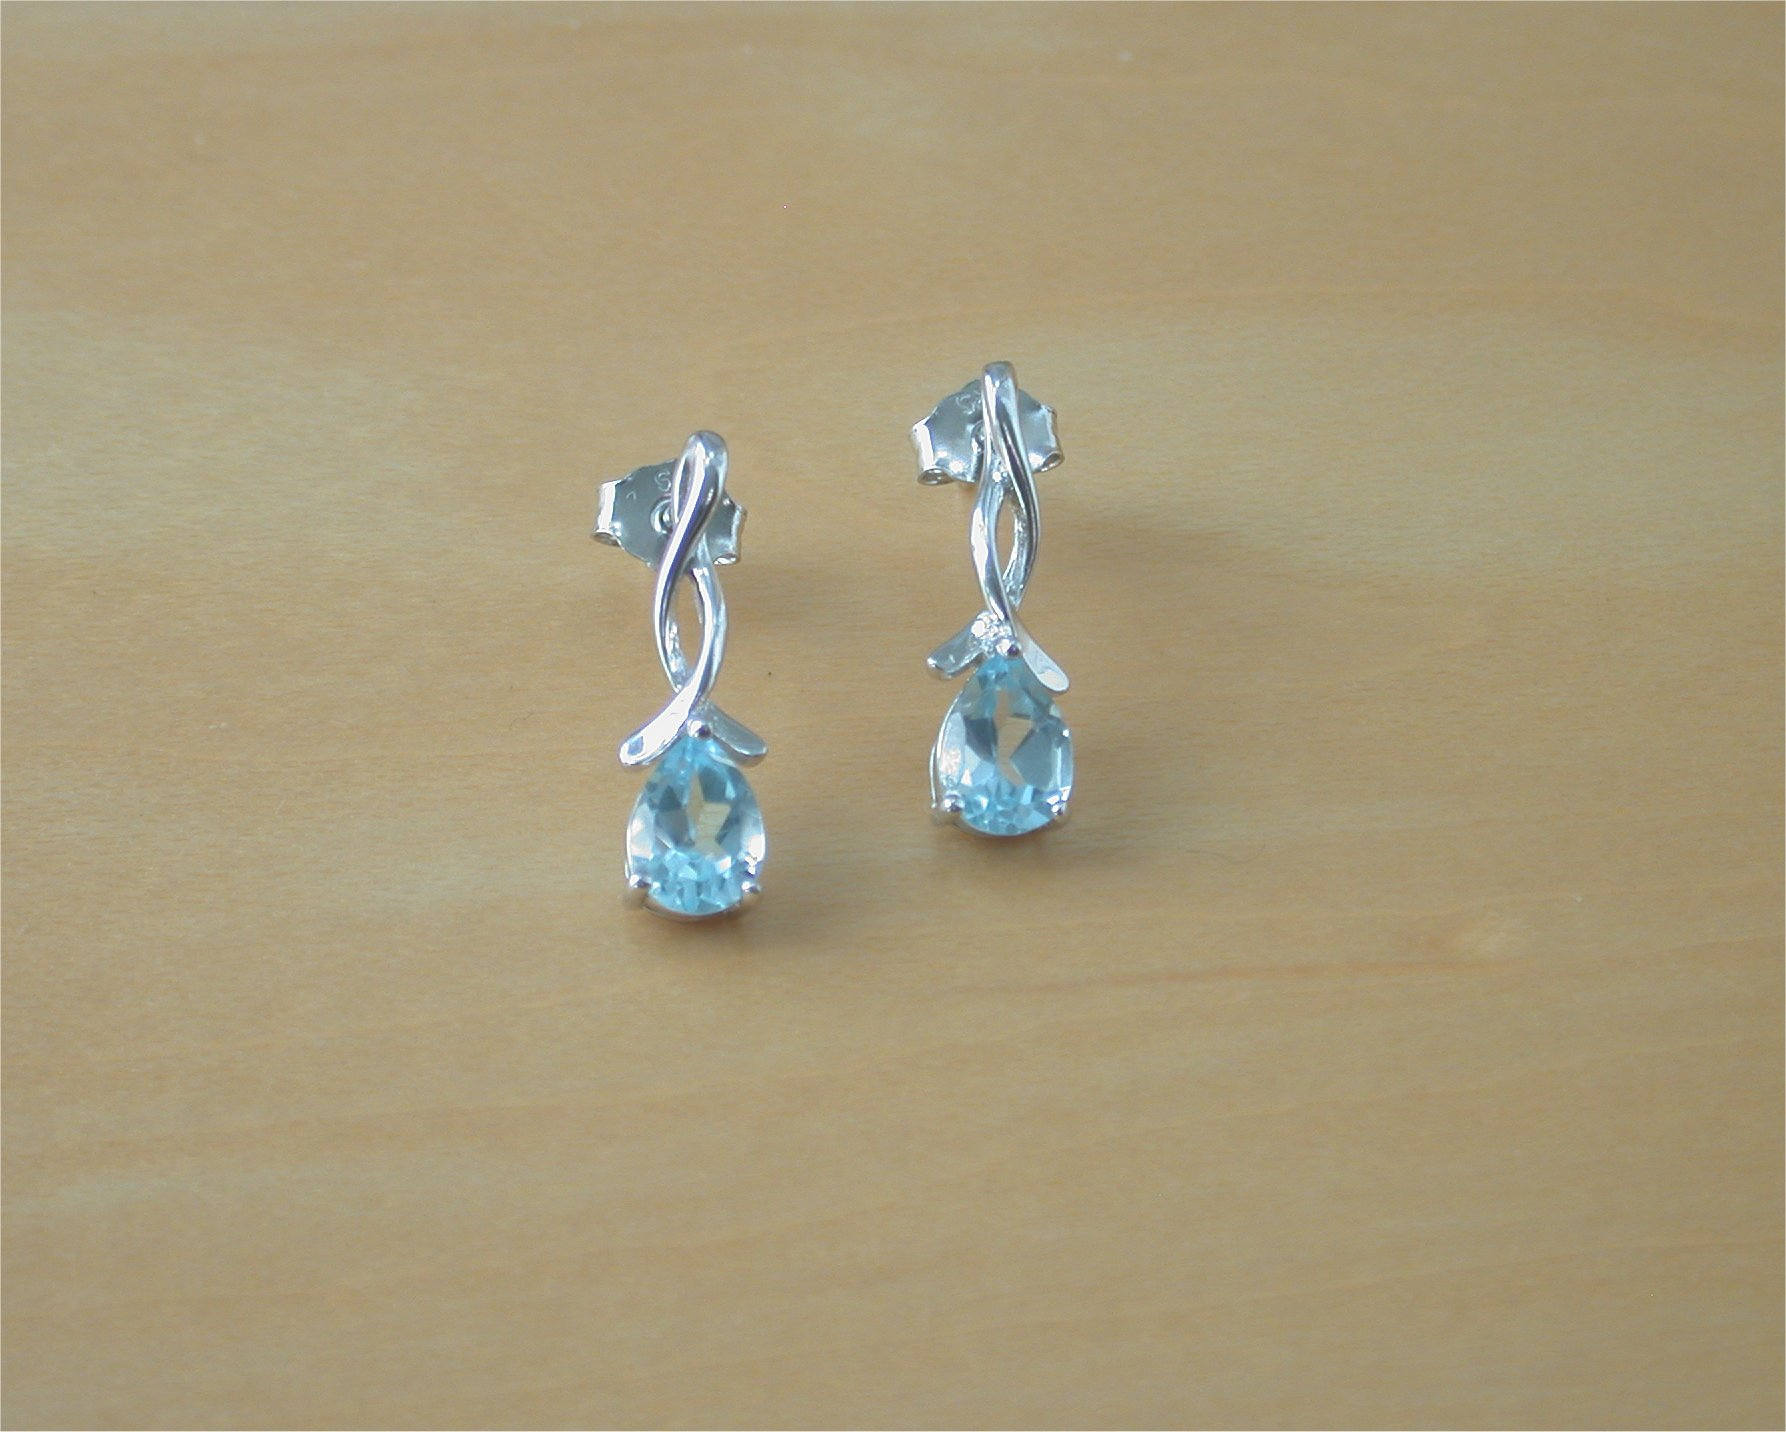 jewelers sterling silver earrings jewellery item blue jewelry dangle kloiber topaz